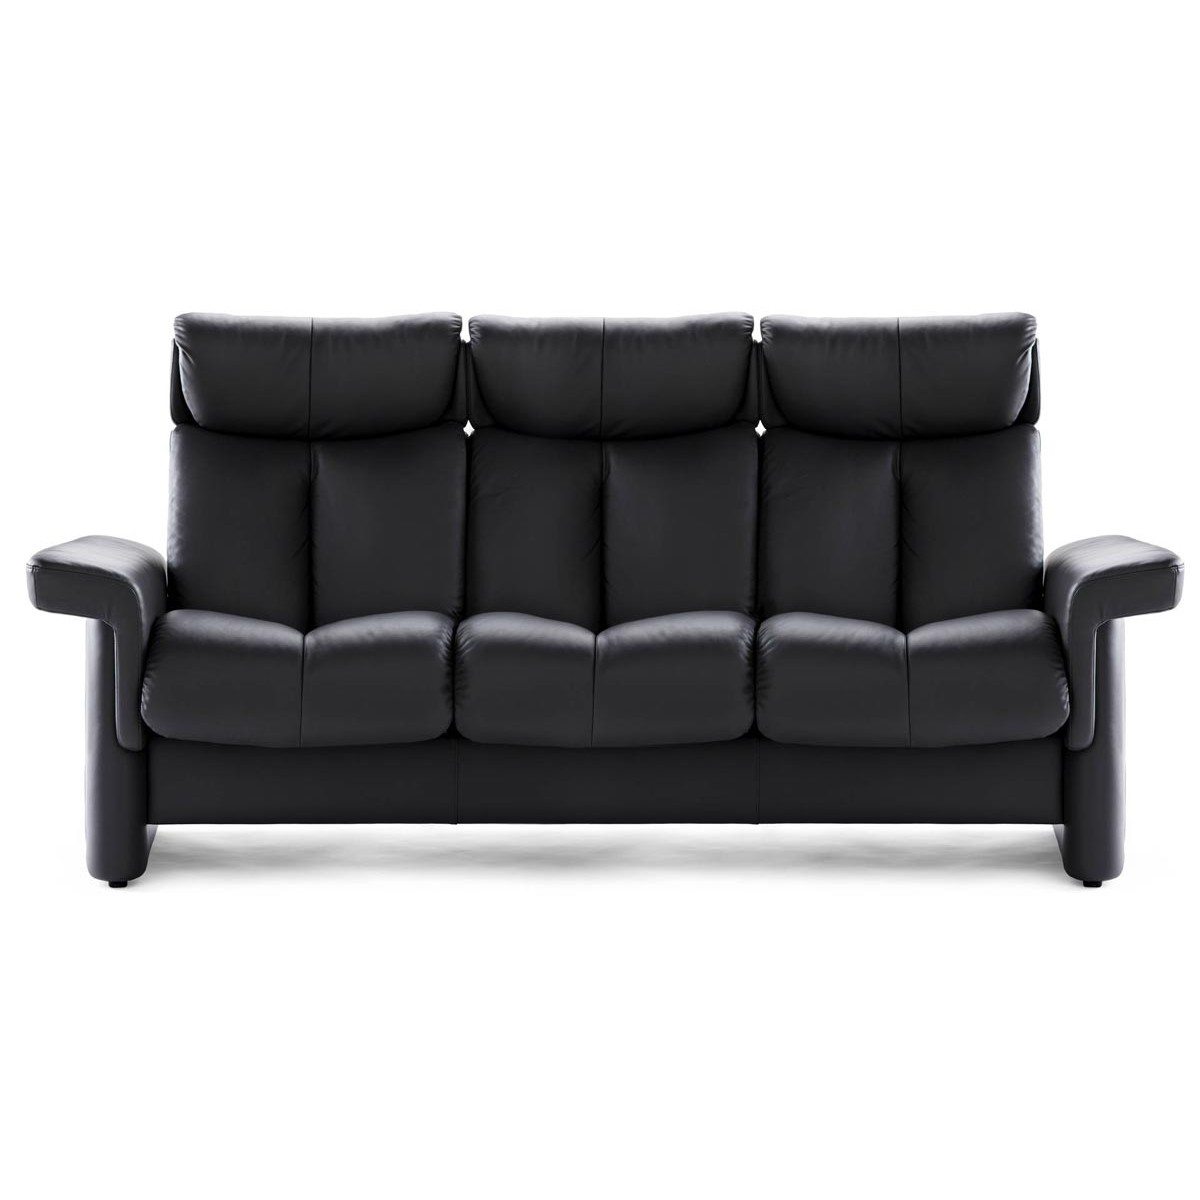 Stressless Legend High Back Sofa From 5 795 00 By